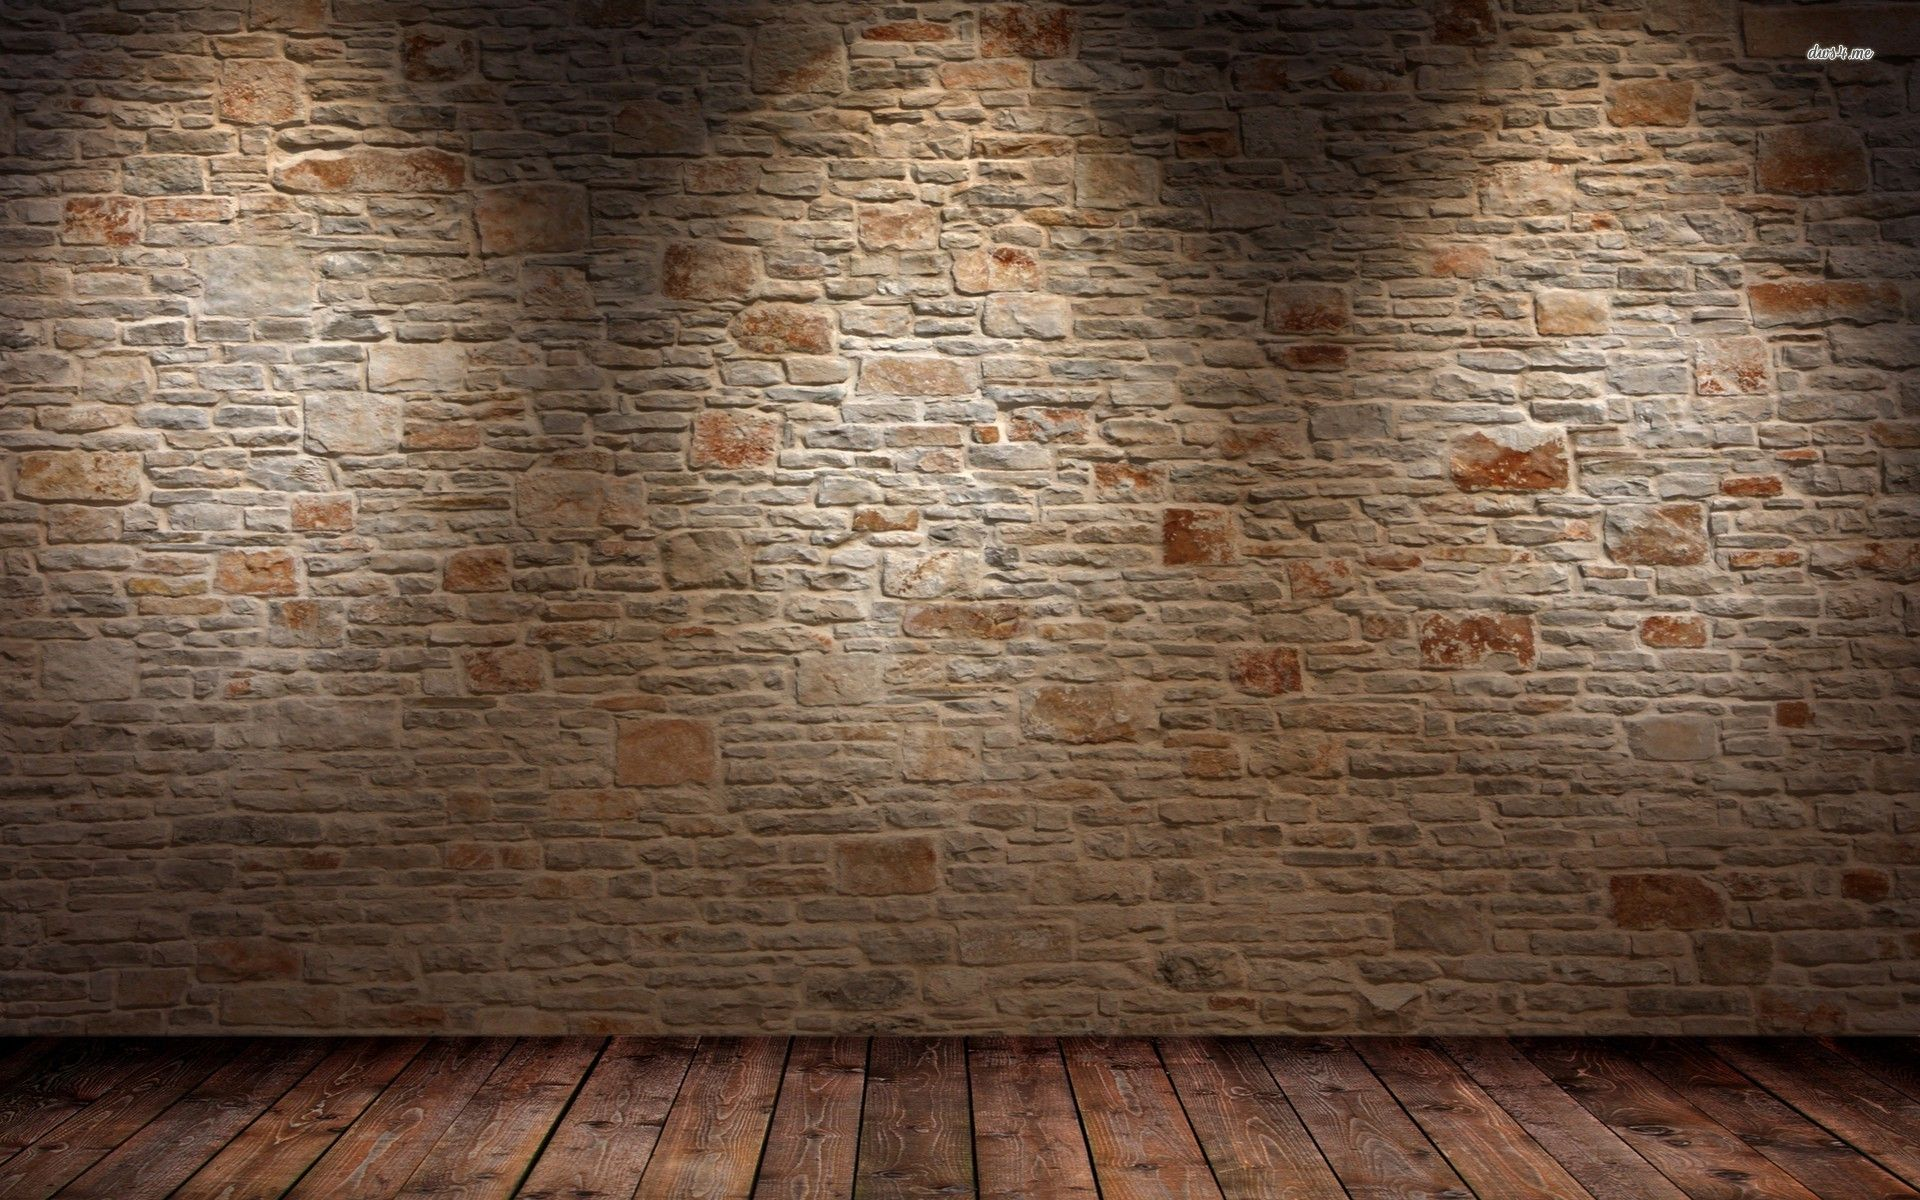 Wood Wall Paper brick wall and wood floor hd wallpaper #1 | abstract desktop